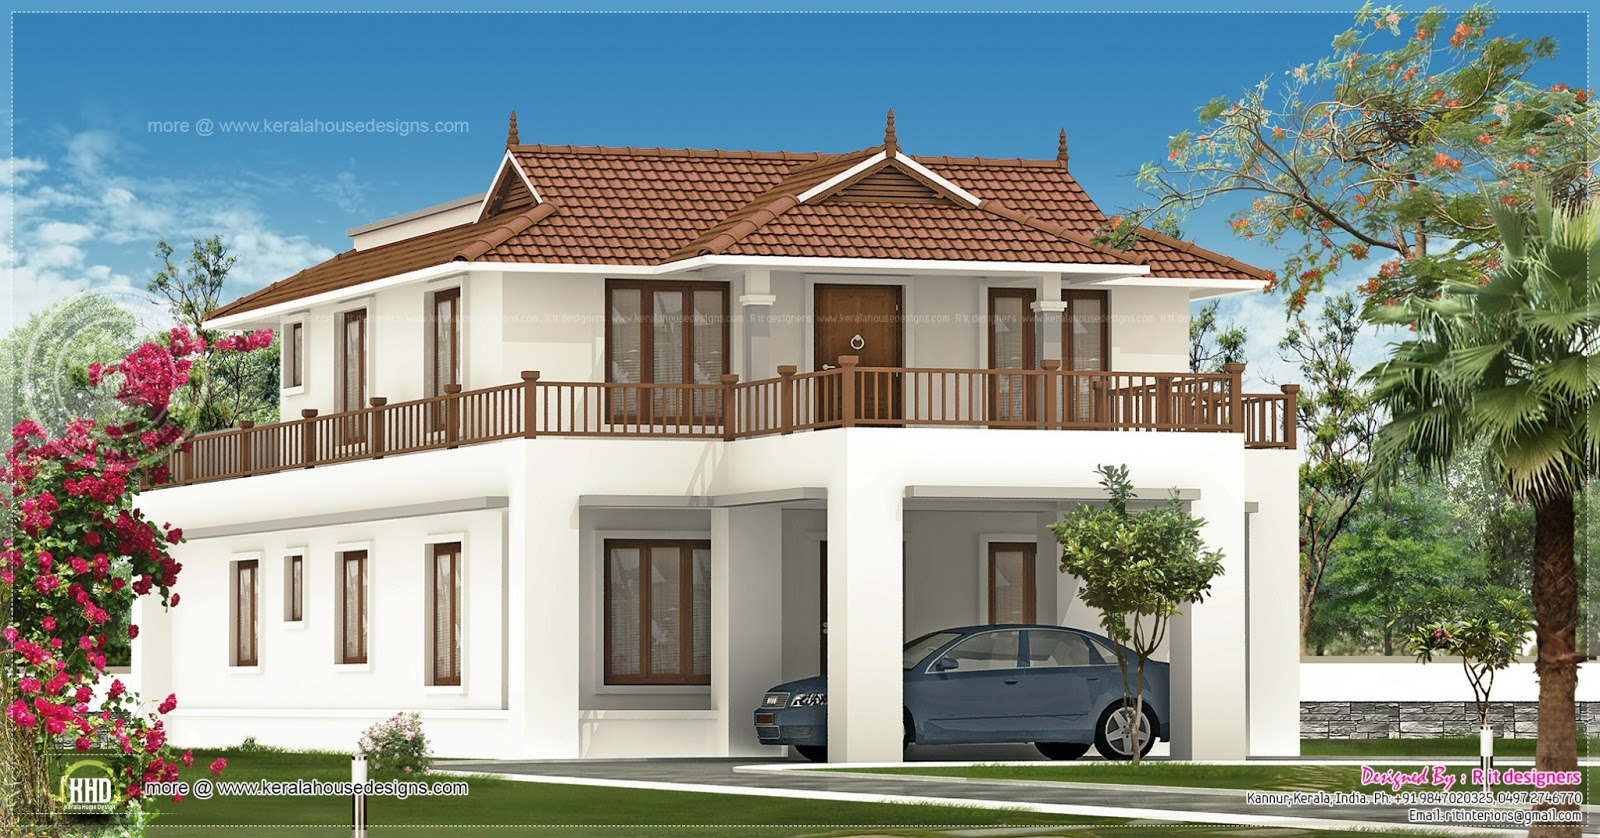 2820 Square Feet House Exterior Design Home Kerala Plans